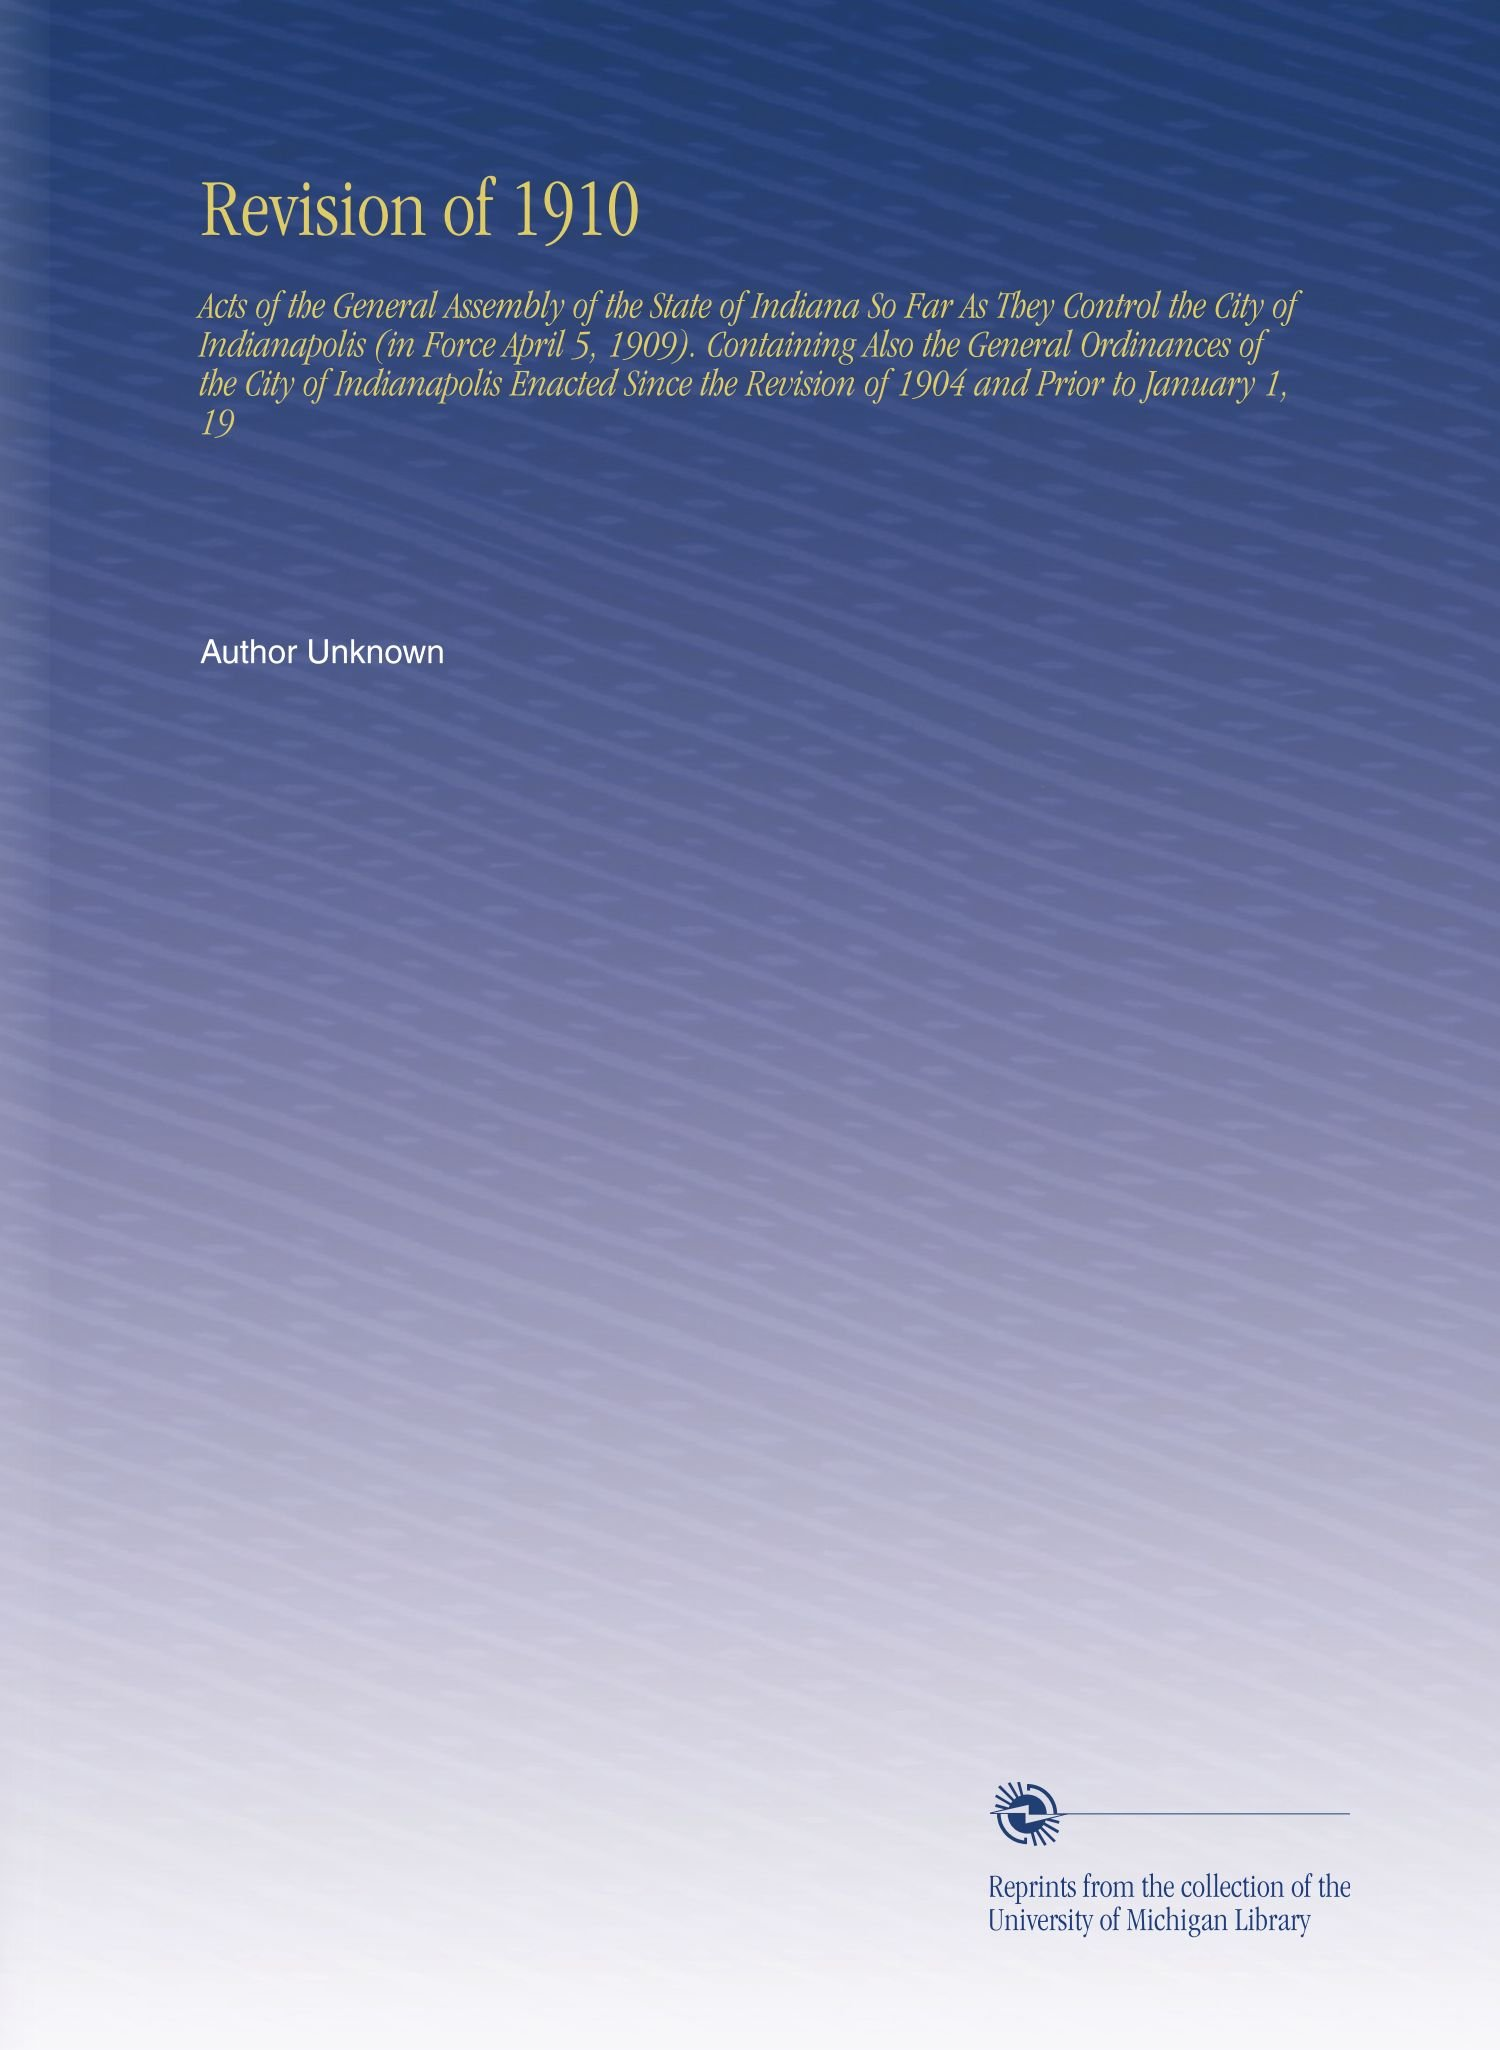 Revision of 1910: Acts of the General Assembly of the State of Indiana So Far As They Control the City of Indianapolis (in Force April 5, 1909). ... Revision of 1904 and Prior to January 1, 19 pdf epub